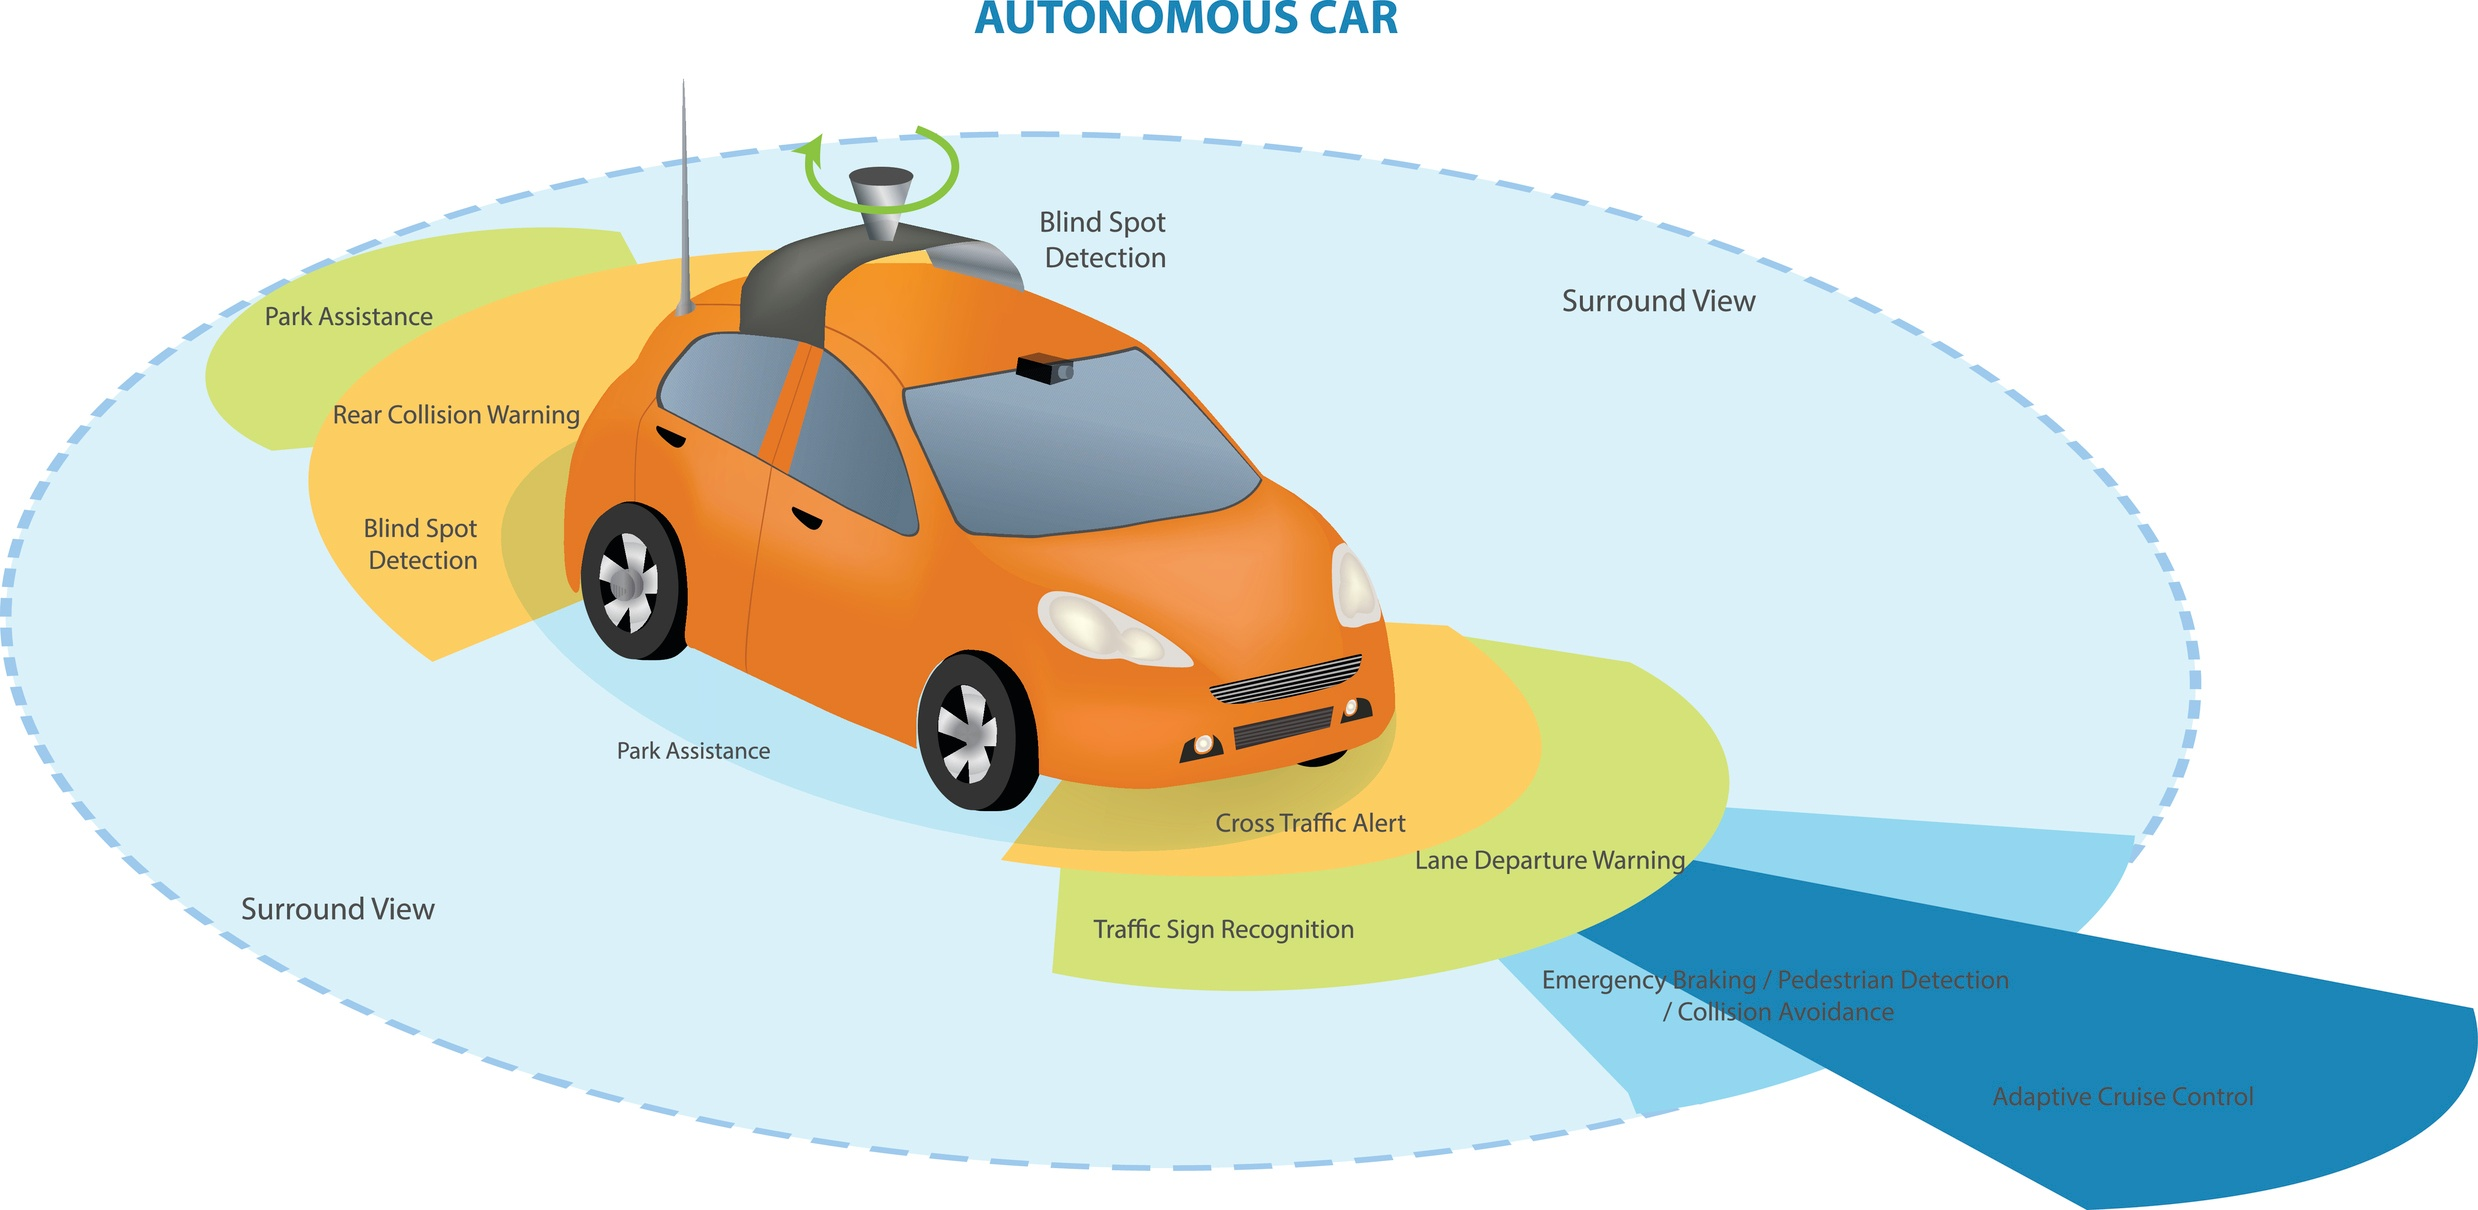 Lessons from Autonomus Cars